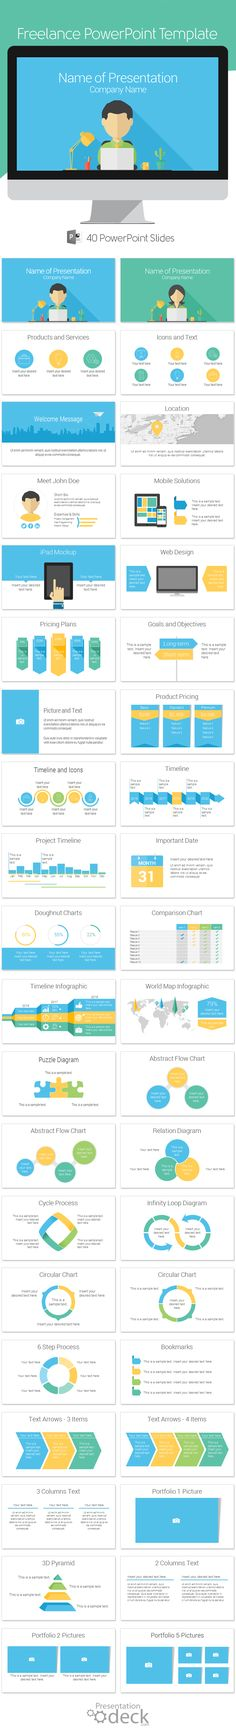 Freelance PowerPoint template in flat design style with 40 pre-designed slides. This template is a great choice for presentations on freelancing jobs, work from home, small business, etc. #powerpoint #presentations #powerpoint_templates #freelance